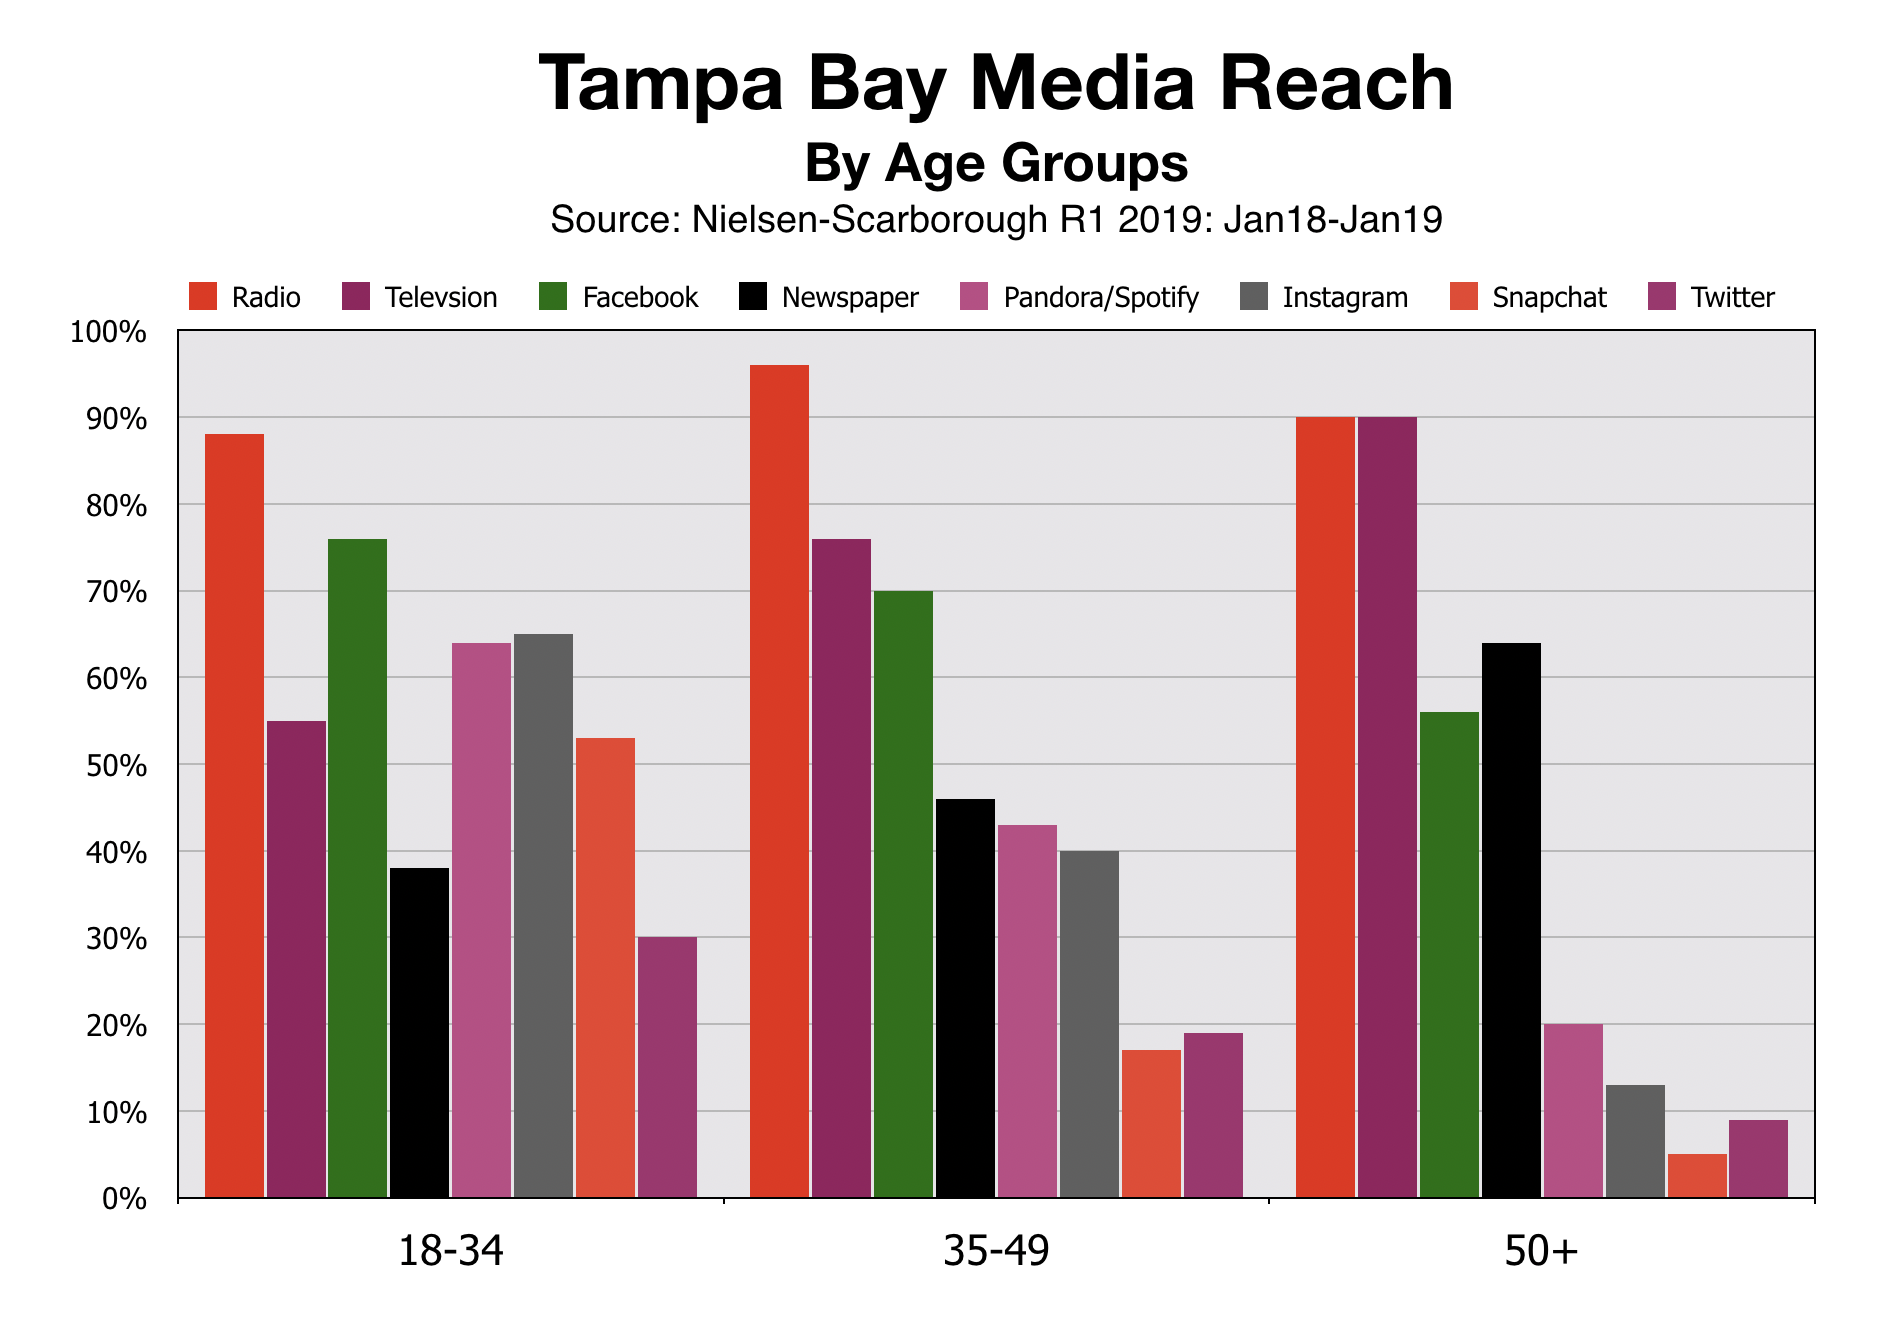 Tampa Bay Media Reach By Age Demographics